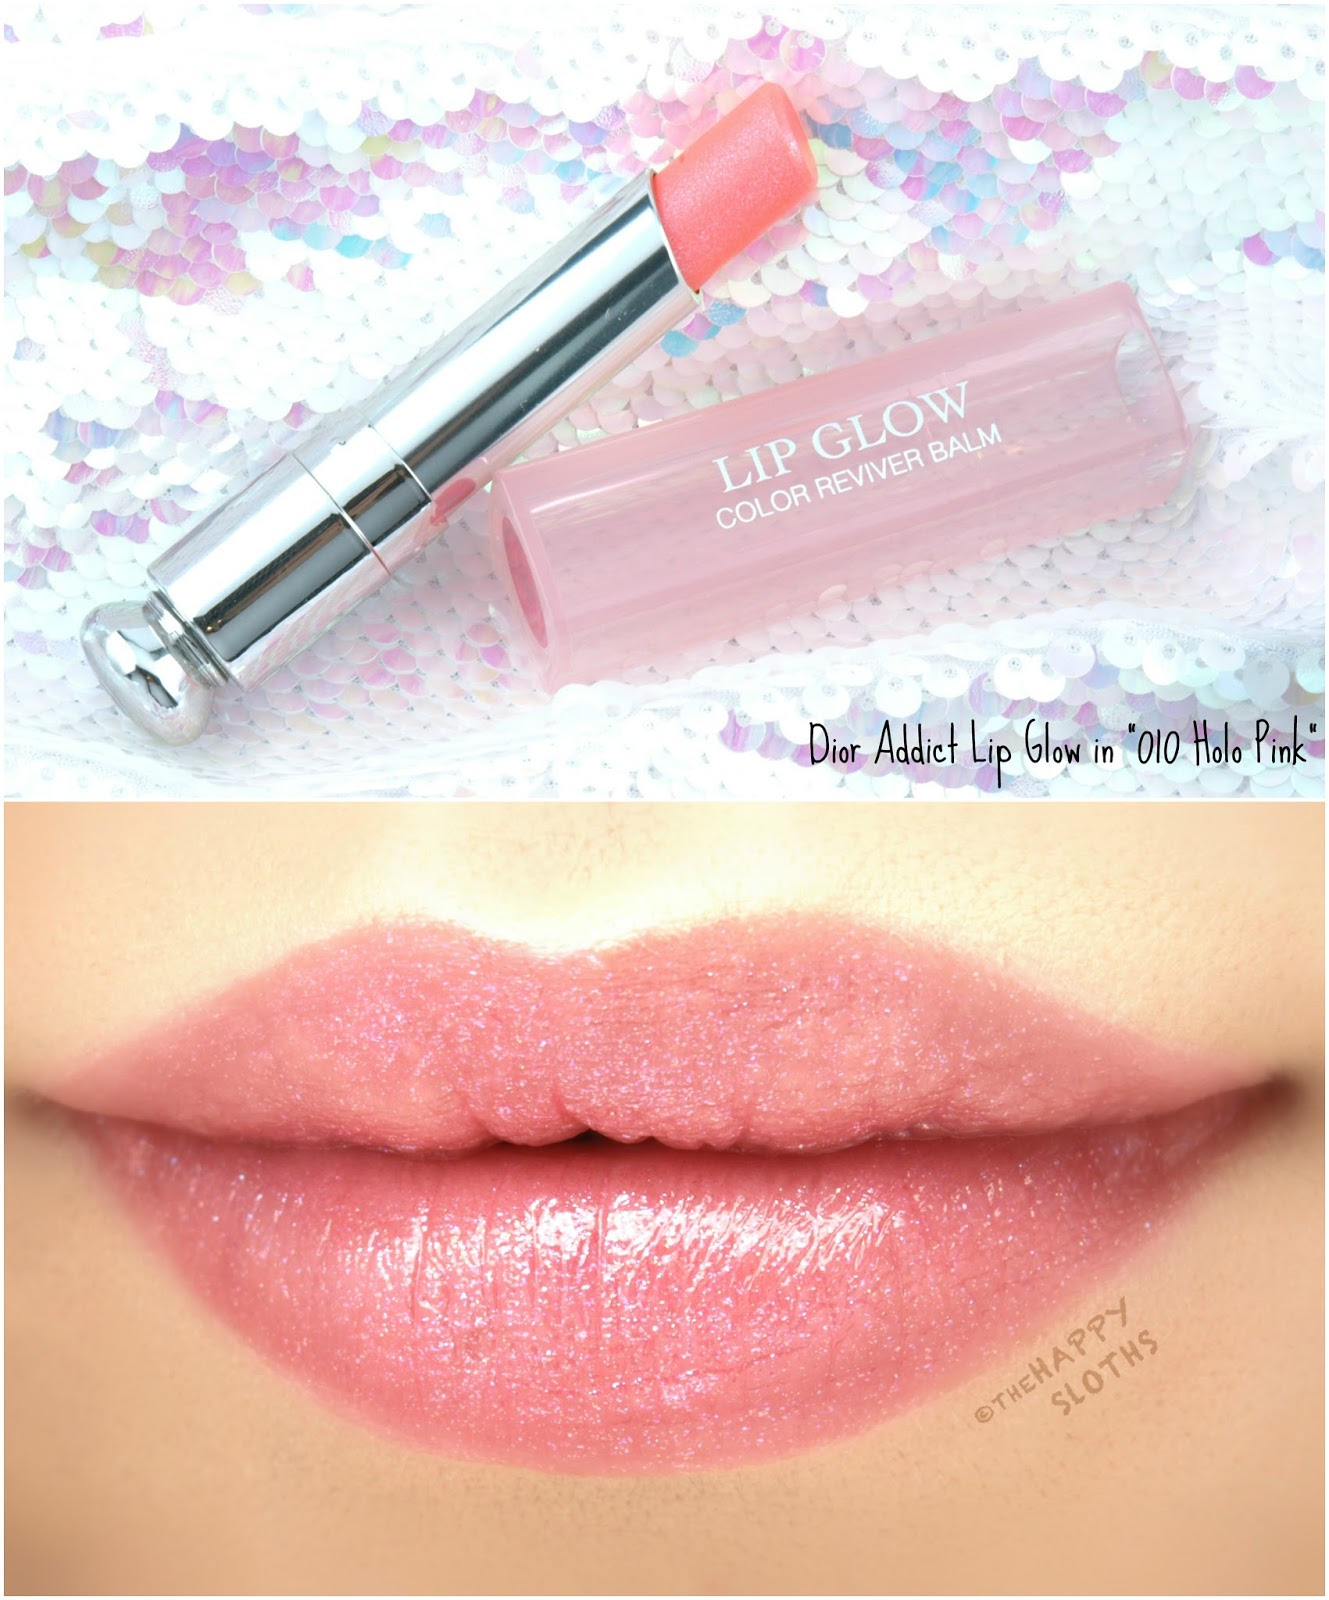 "Dior Addict Lip Glow Color Reviver Balm in ""010 Holo Pink"": Review and Swatches"